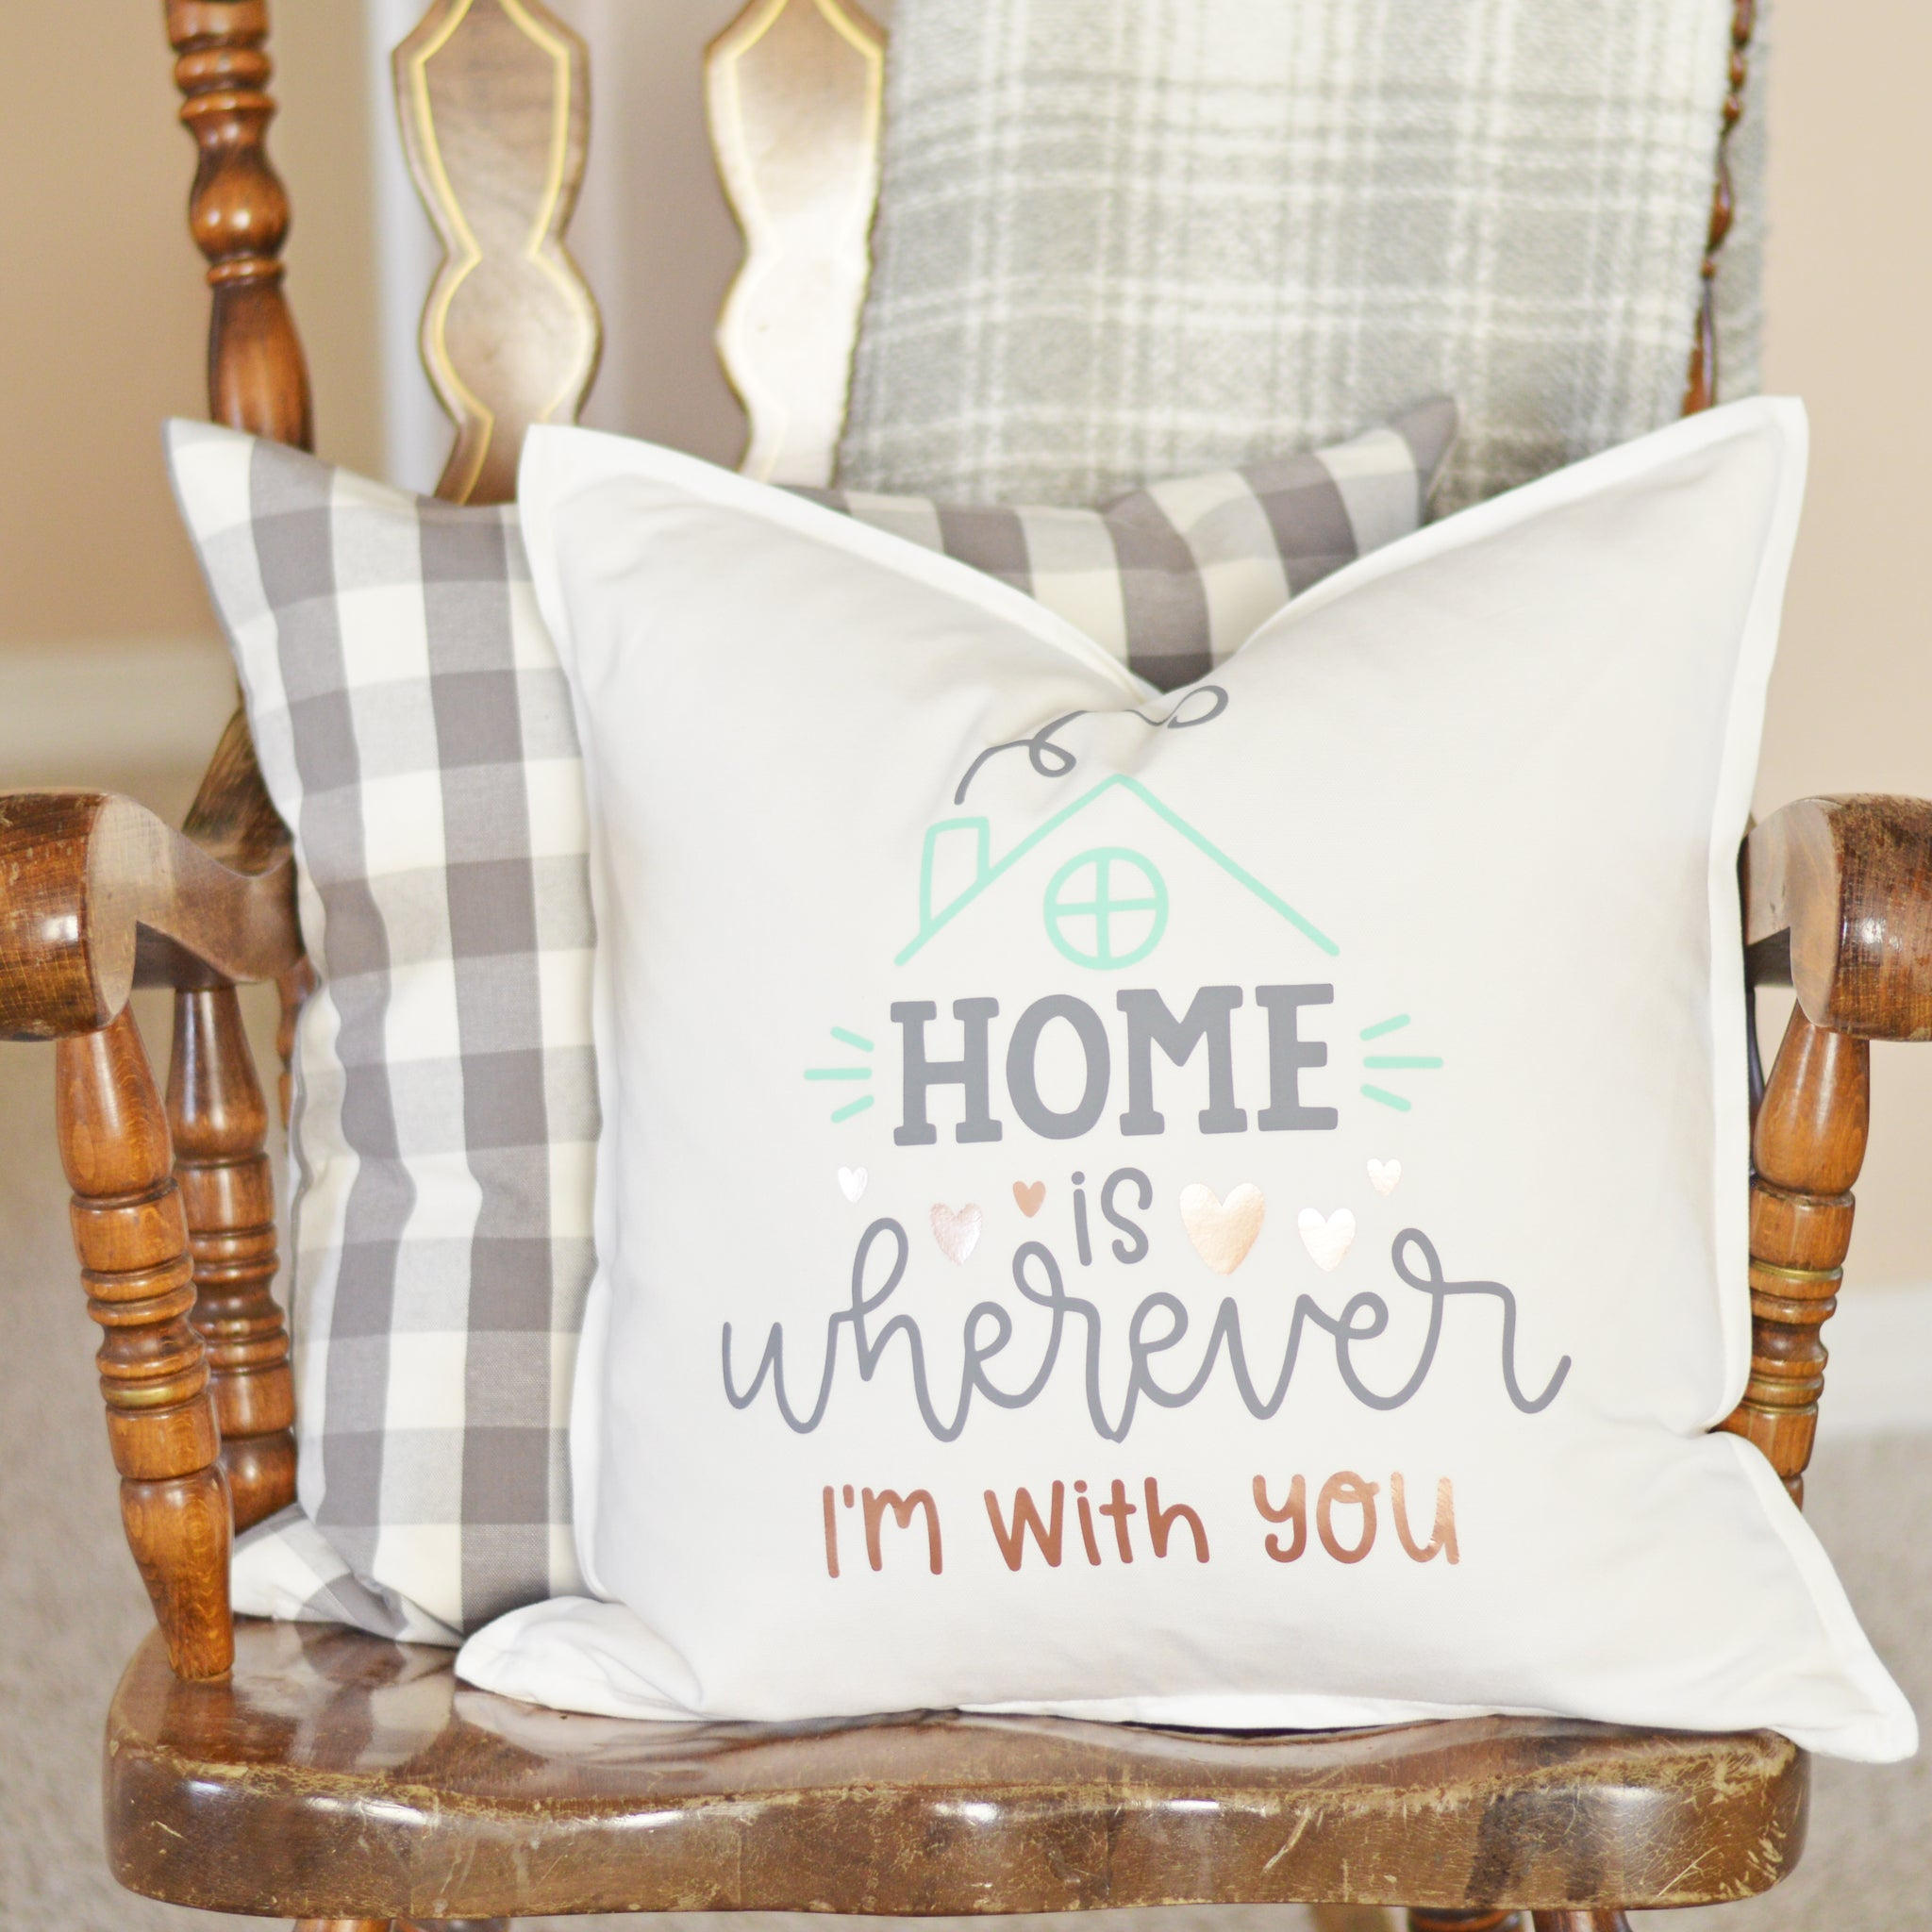 Craftey + The Happy Scraps Home is Wherever I'm with You Pillow - Complete 4